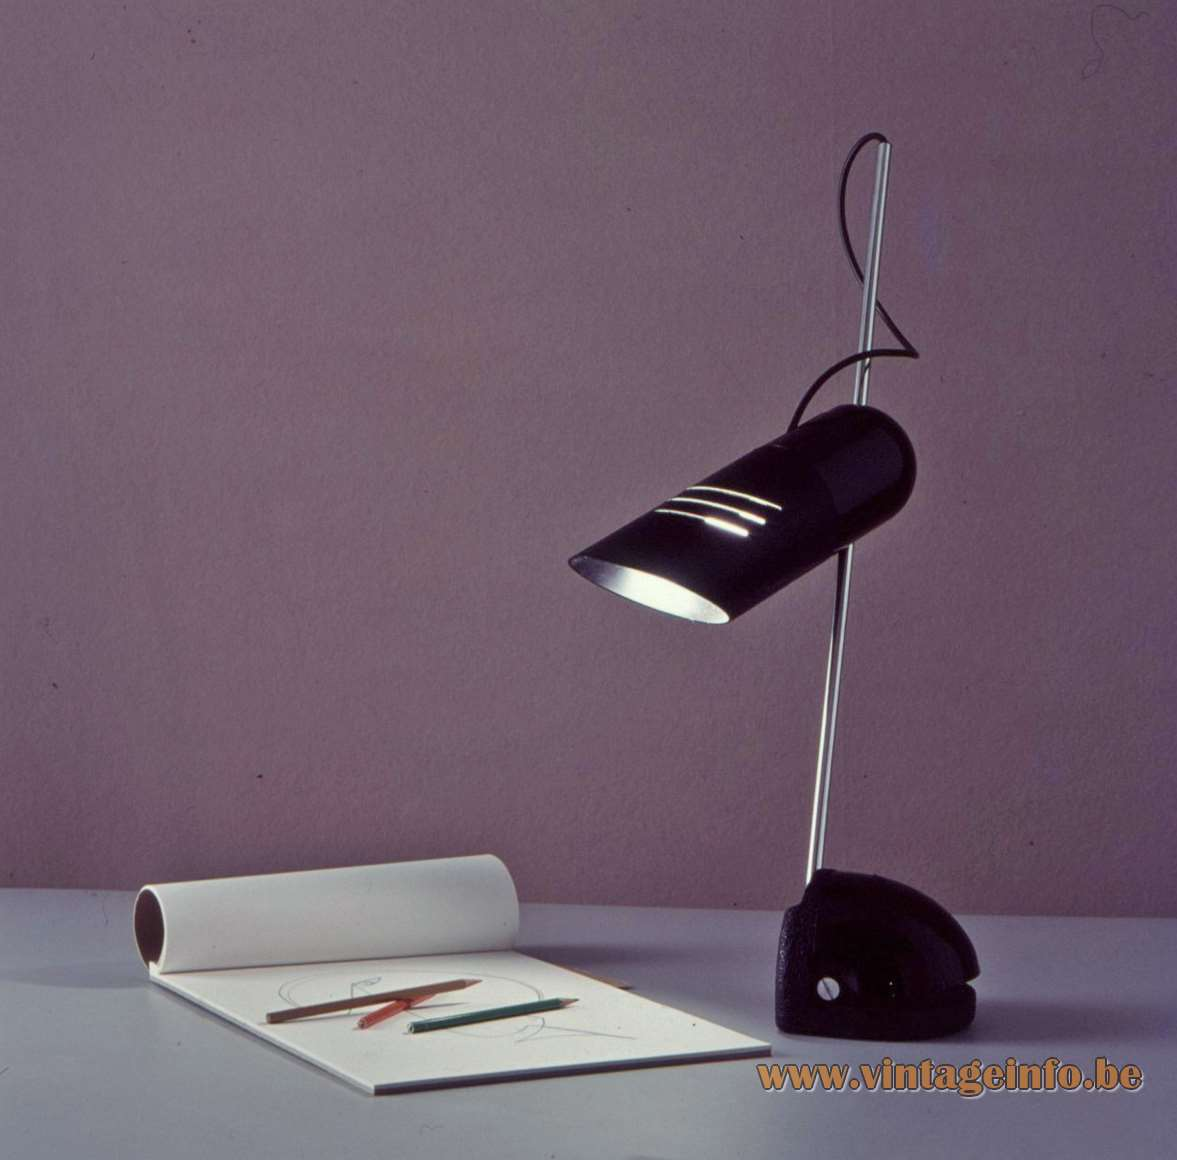 Harvey Guzzini Galdino Table Lamp design: Carlo Urbinati 1973 cast iron base tubular lampshade 1970s MCM